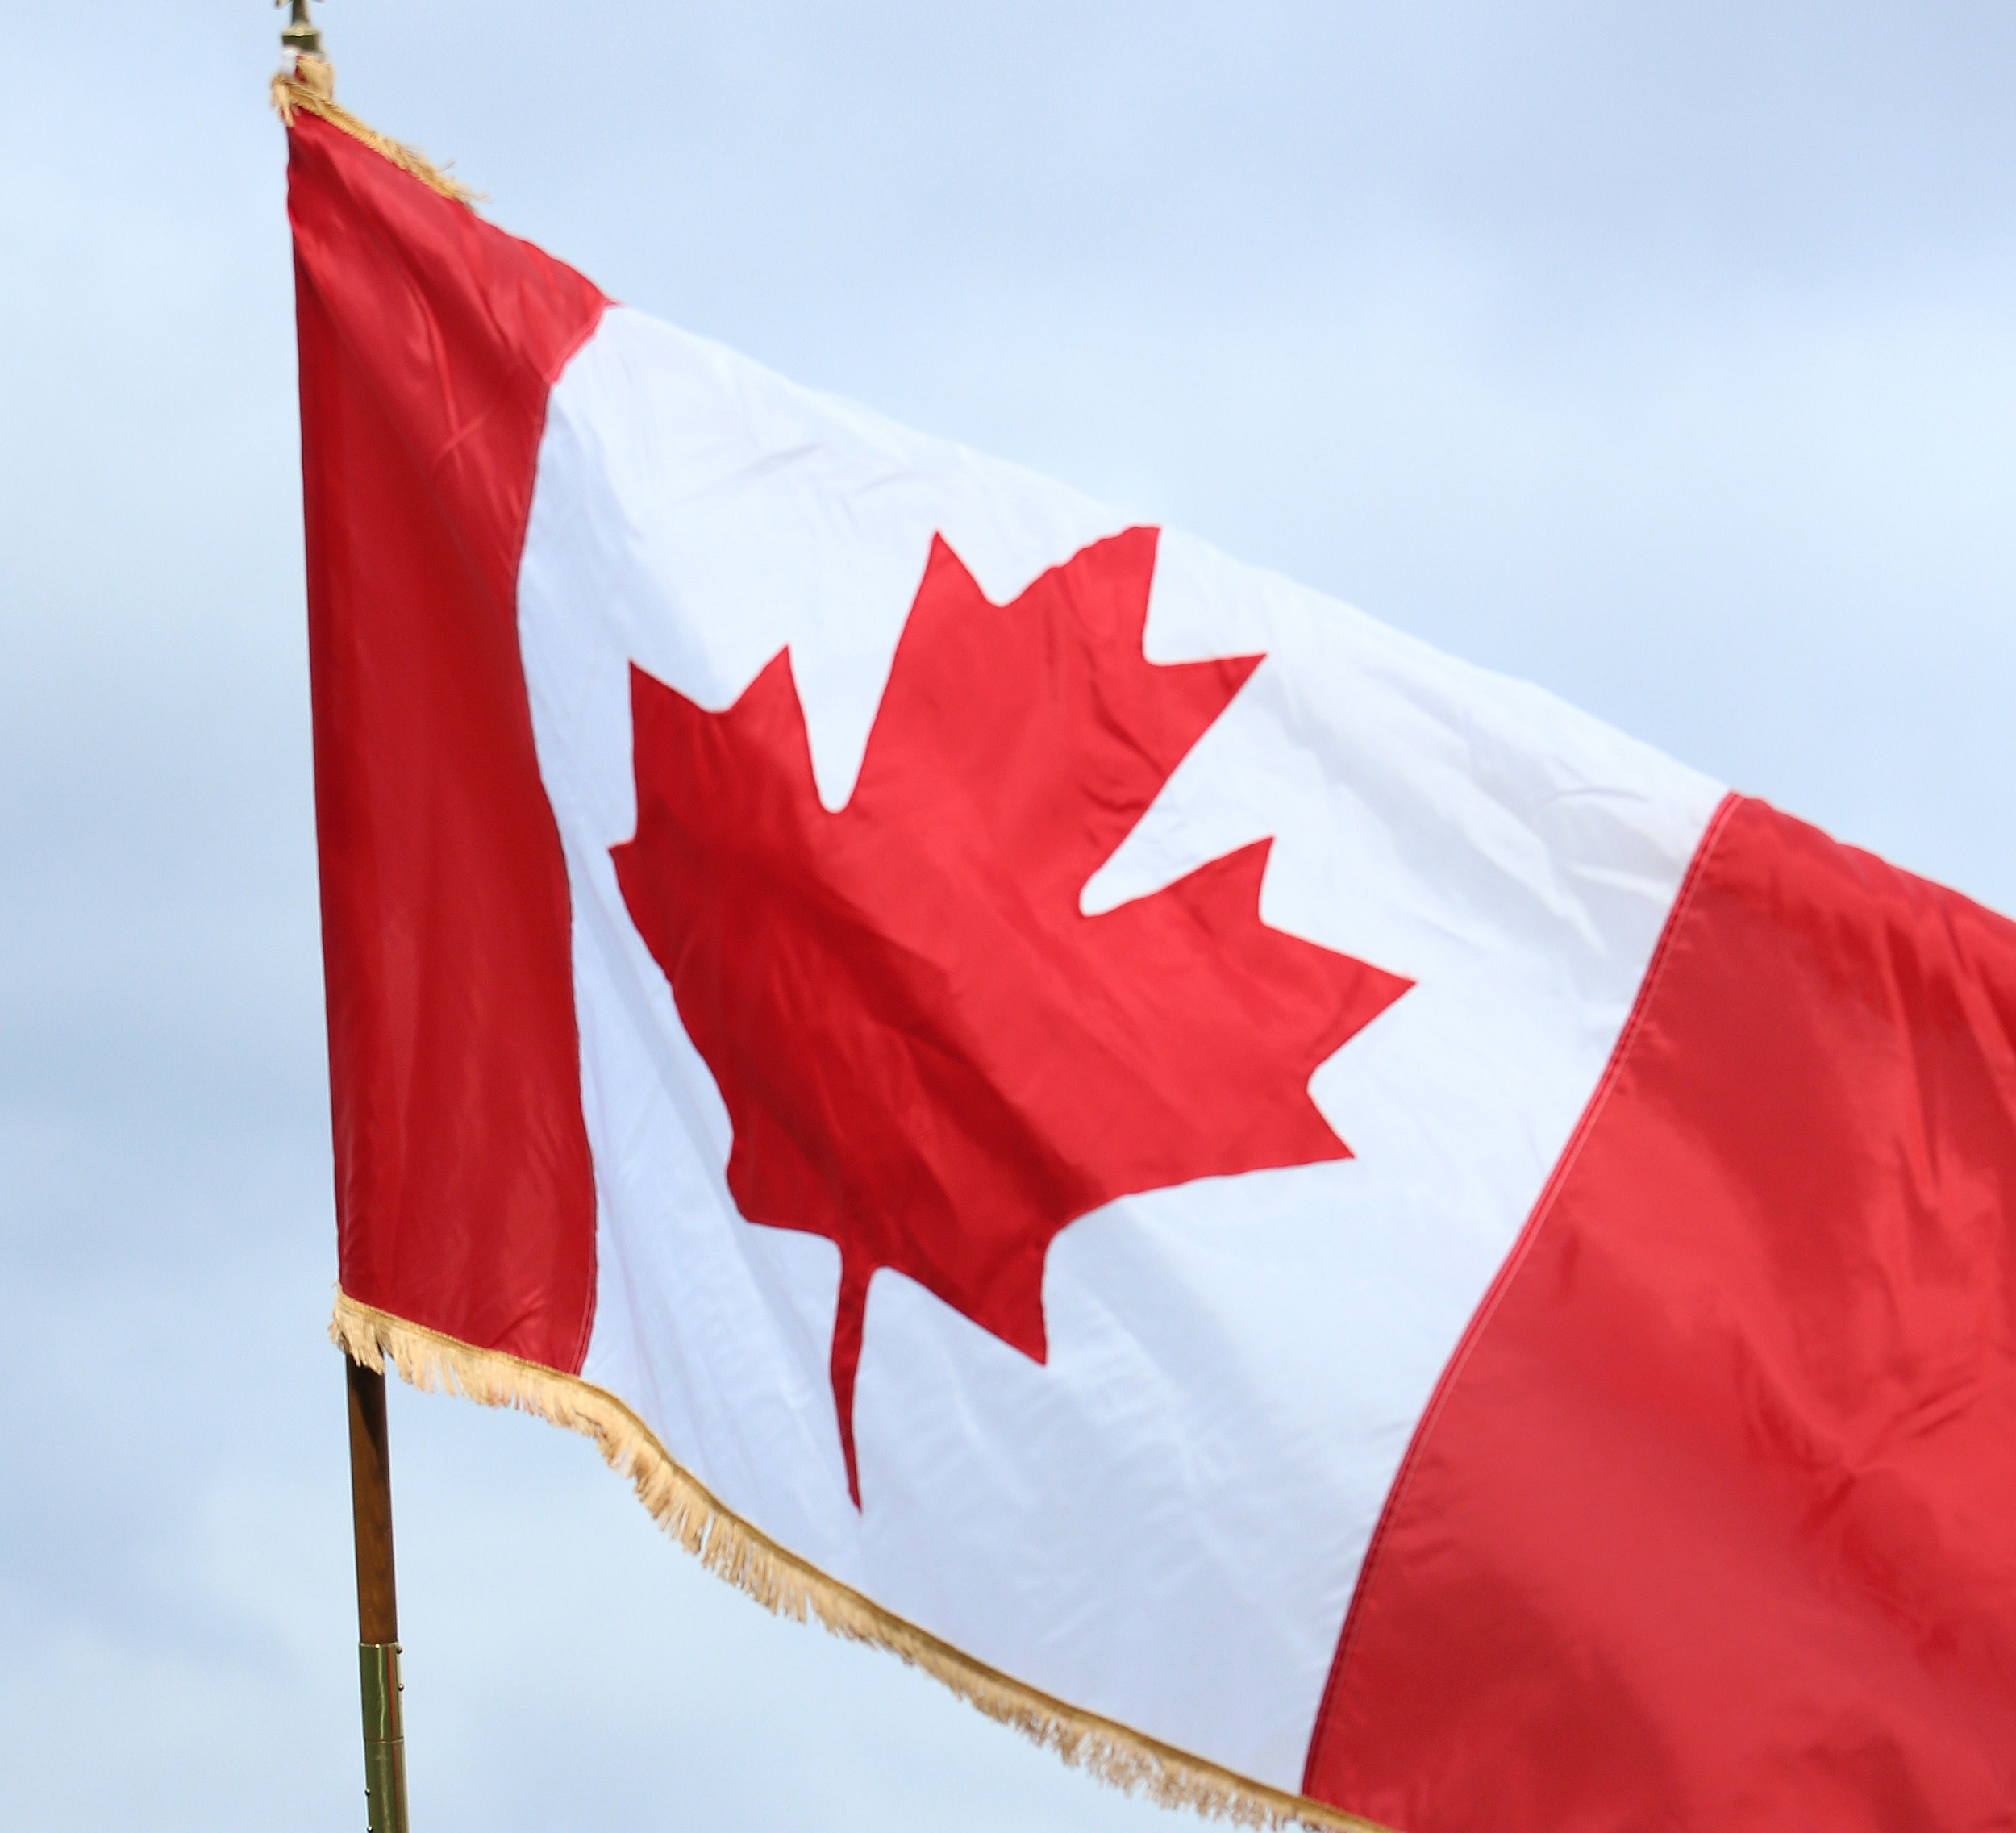 In What Year Was The First Canadian Flag Flown